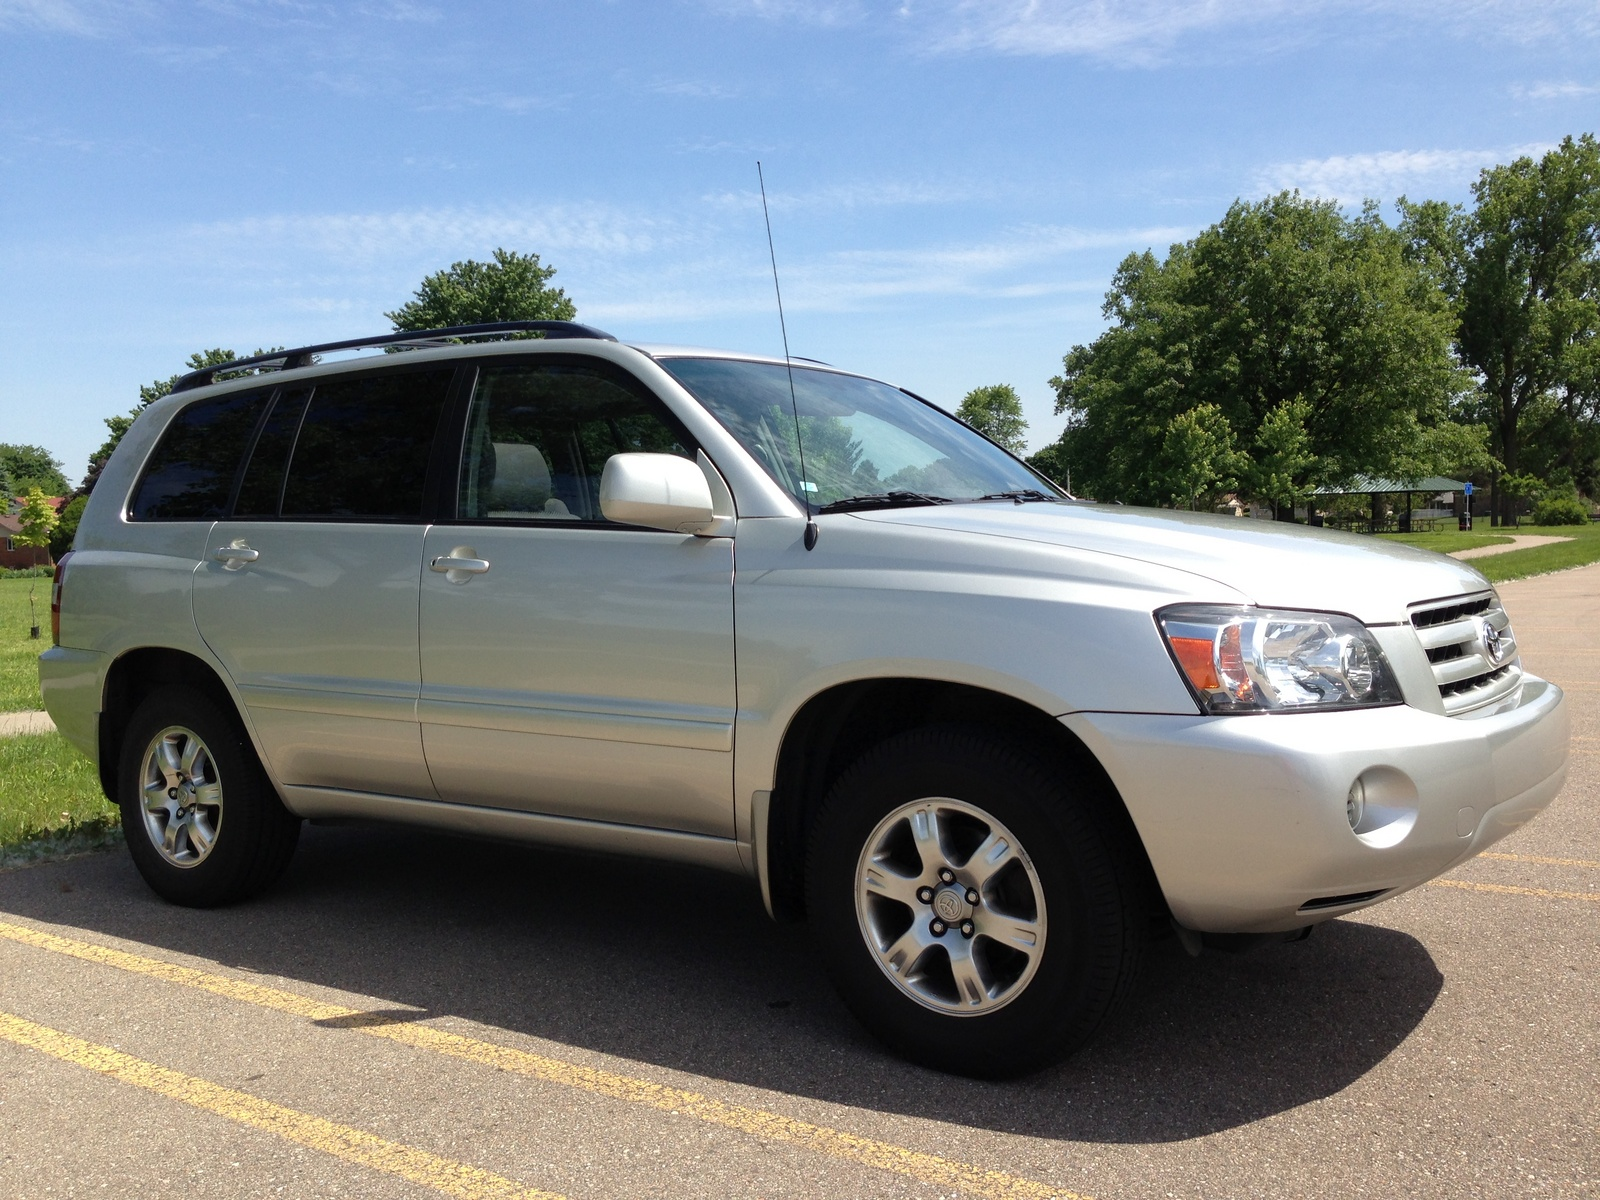 2012 toyota highlander reviews ratings consumer reports autos post. Black Bedroom Furniture Sets. Home Design Ideas